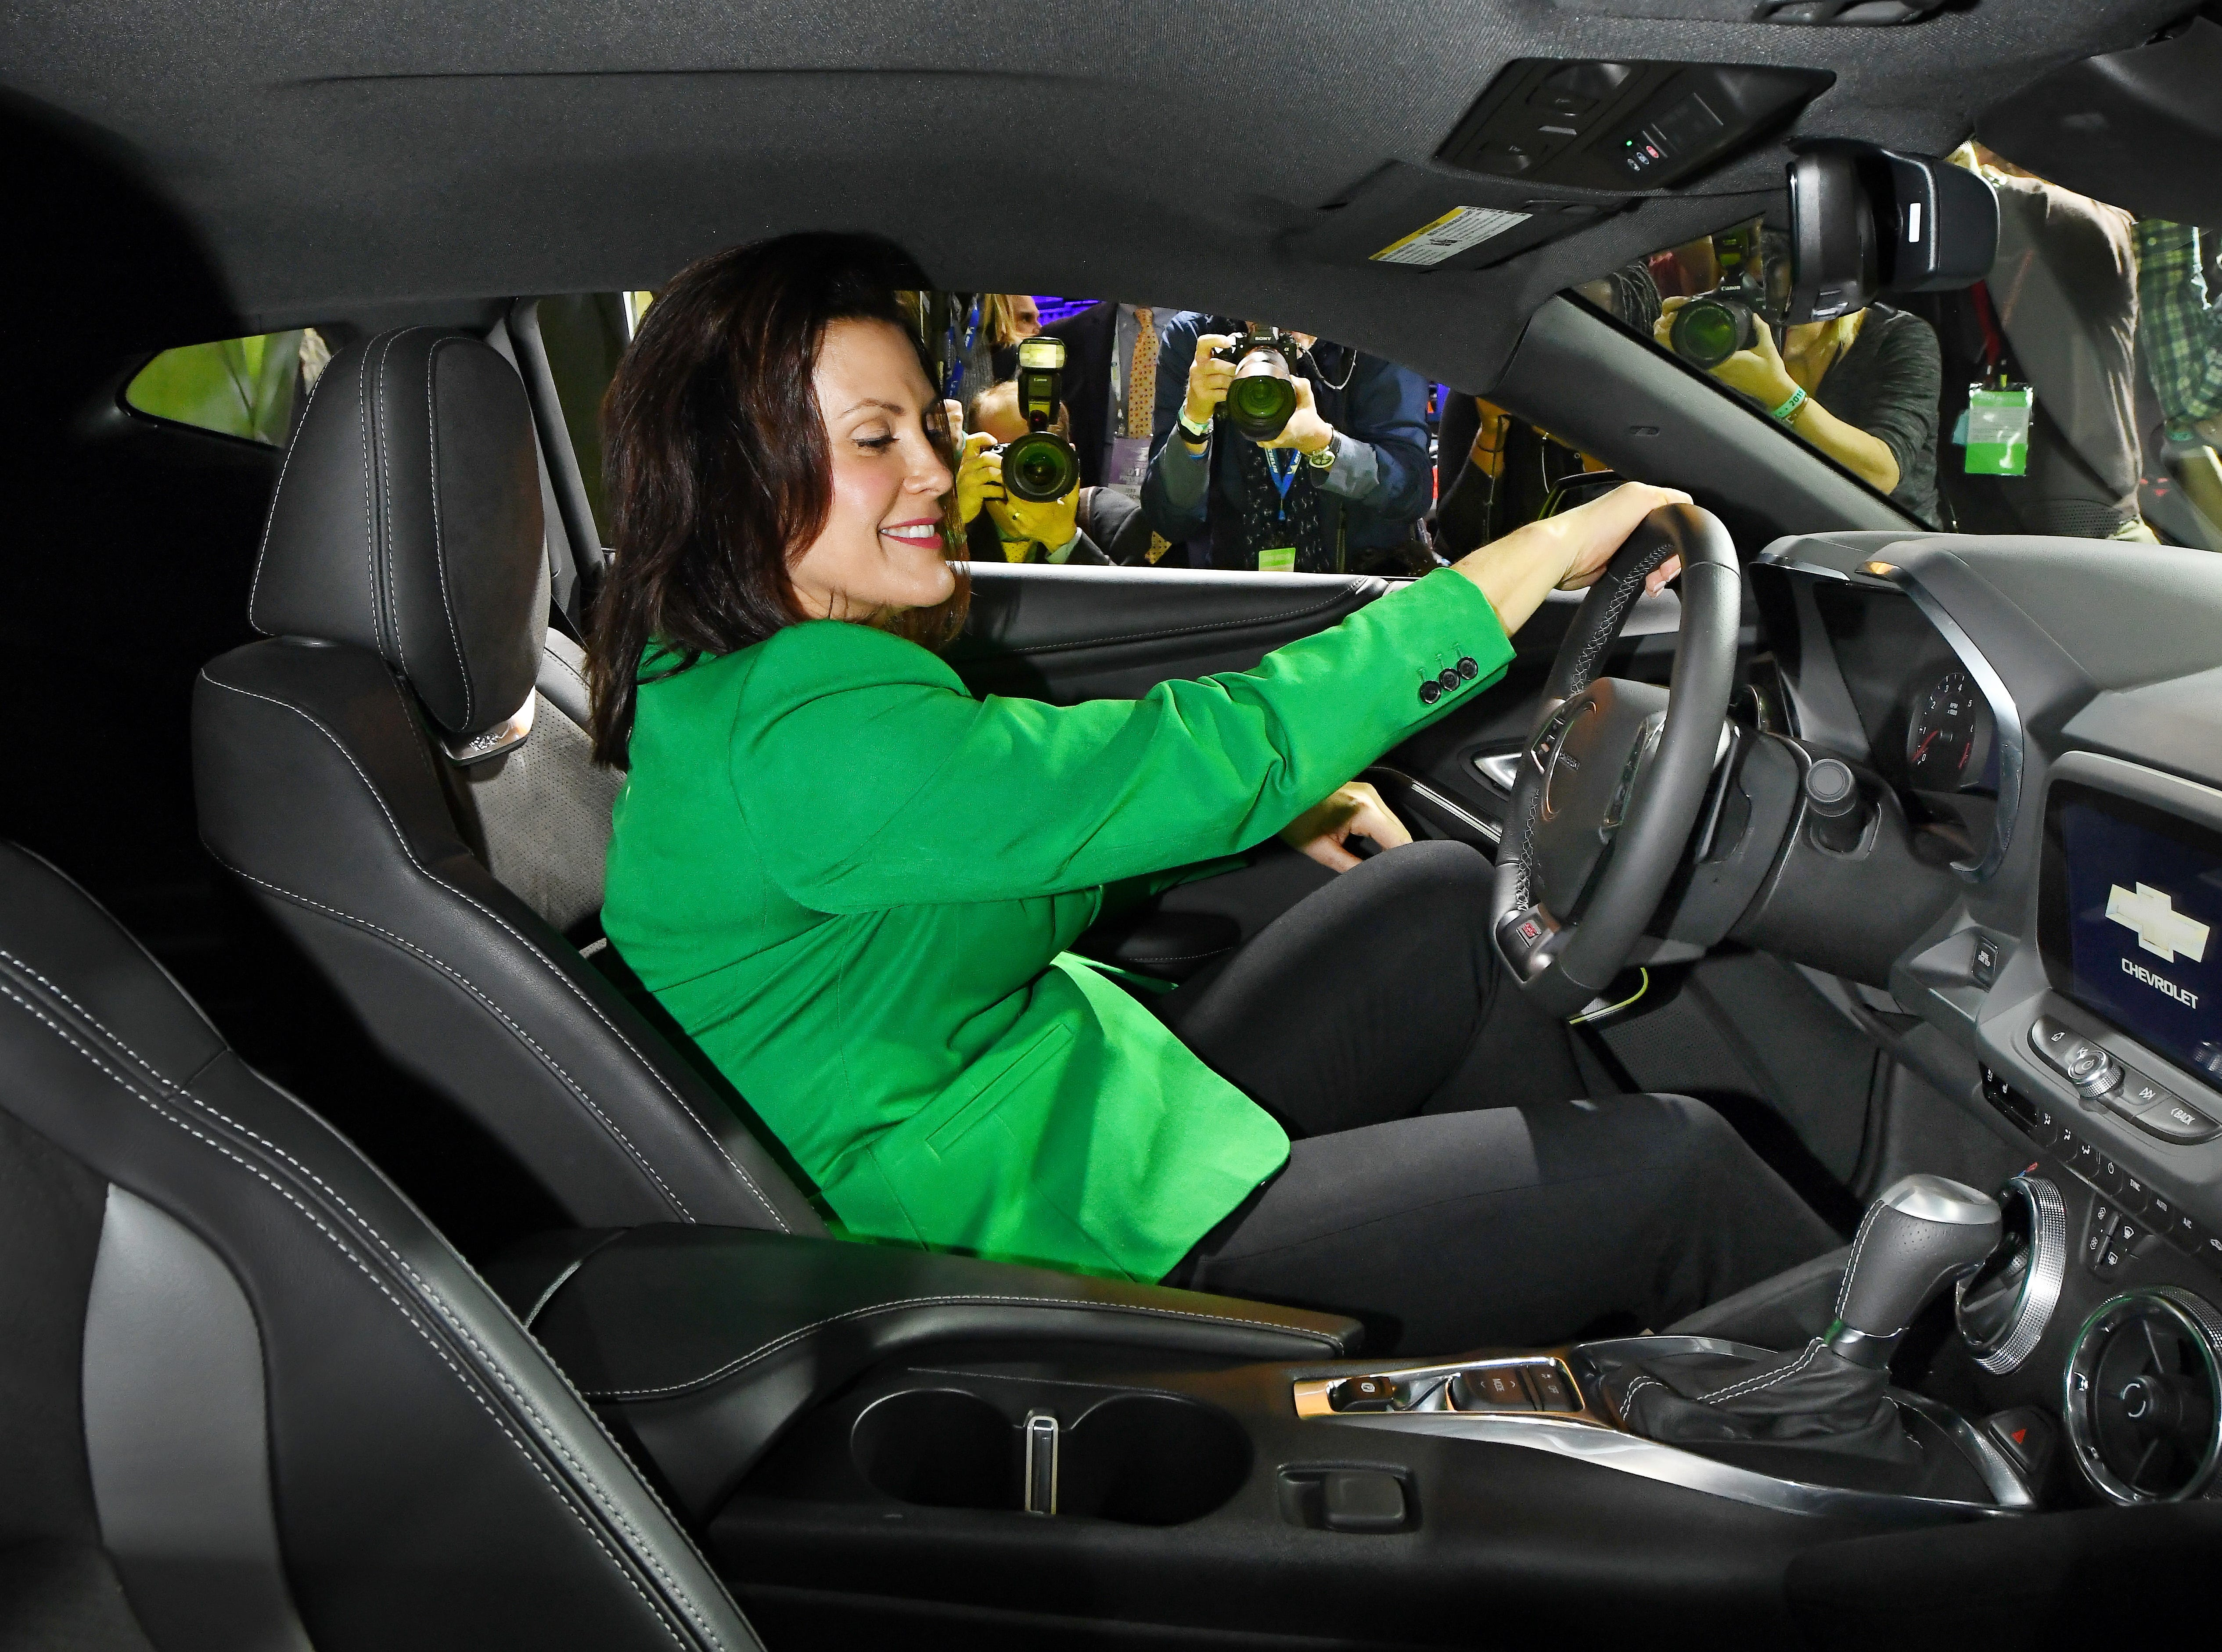 Michigan Governor Gretchen Whitmer looks pretty comfortable in a Chevrolet Camero in the General Motors display during a tour of the North American International Auto Show.